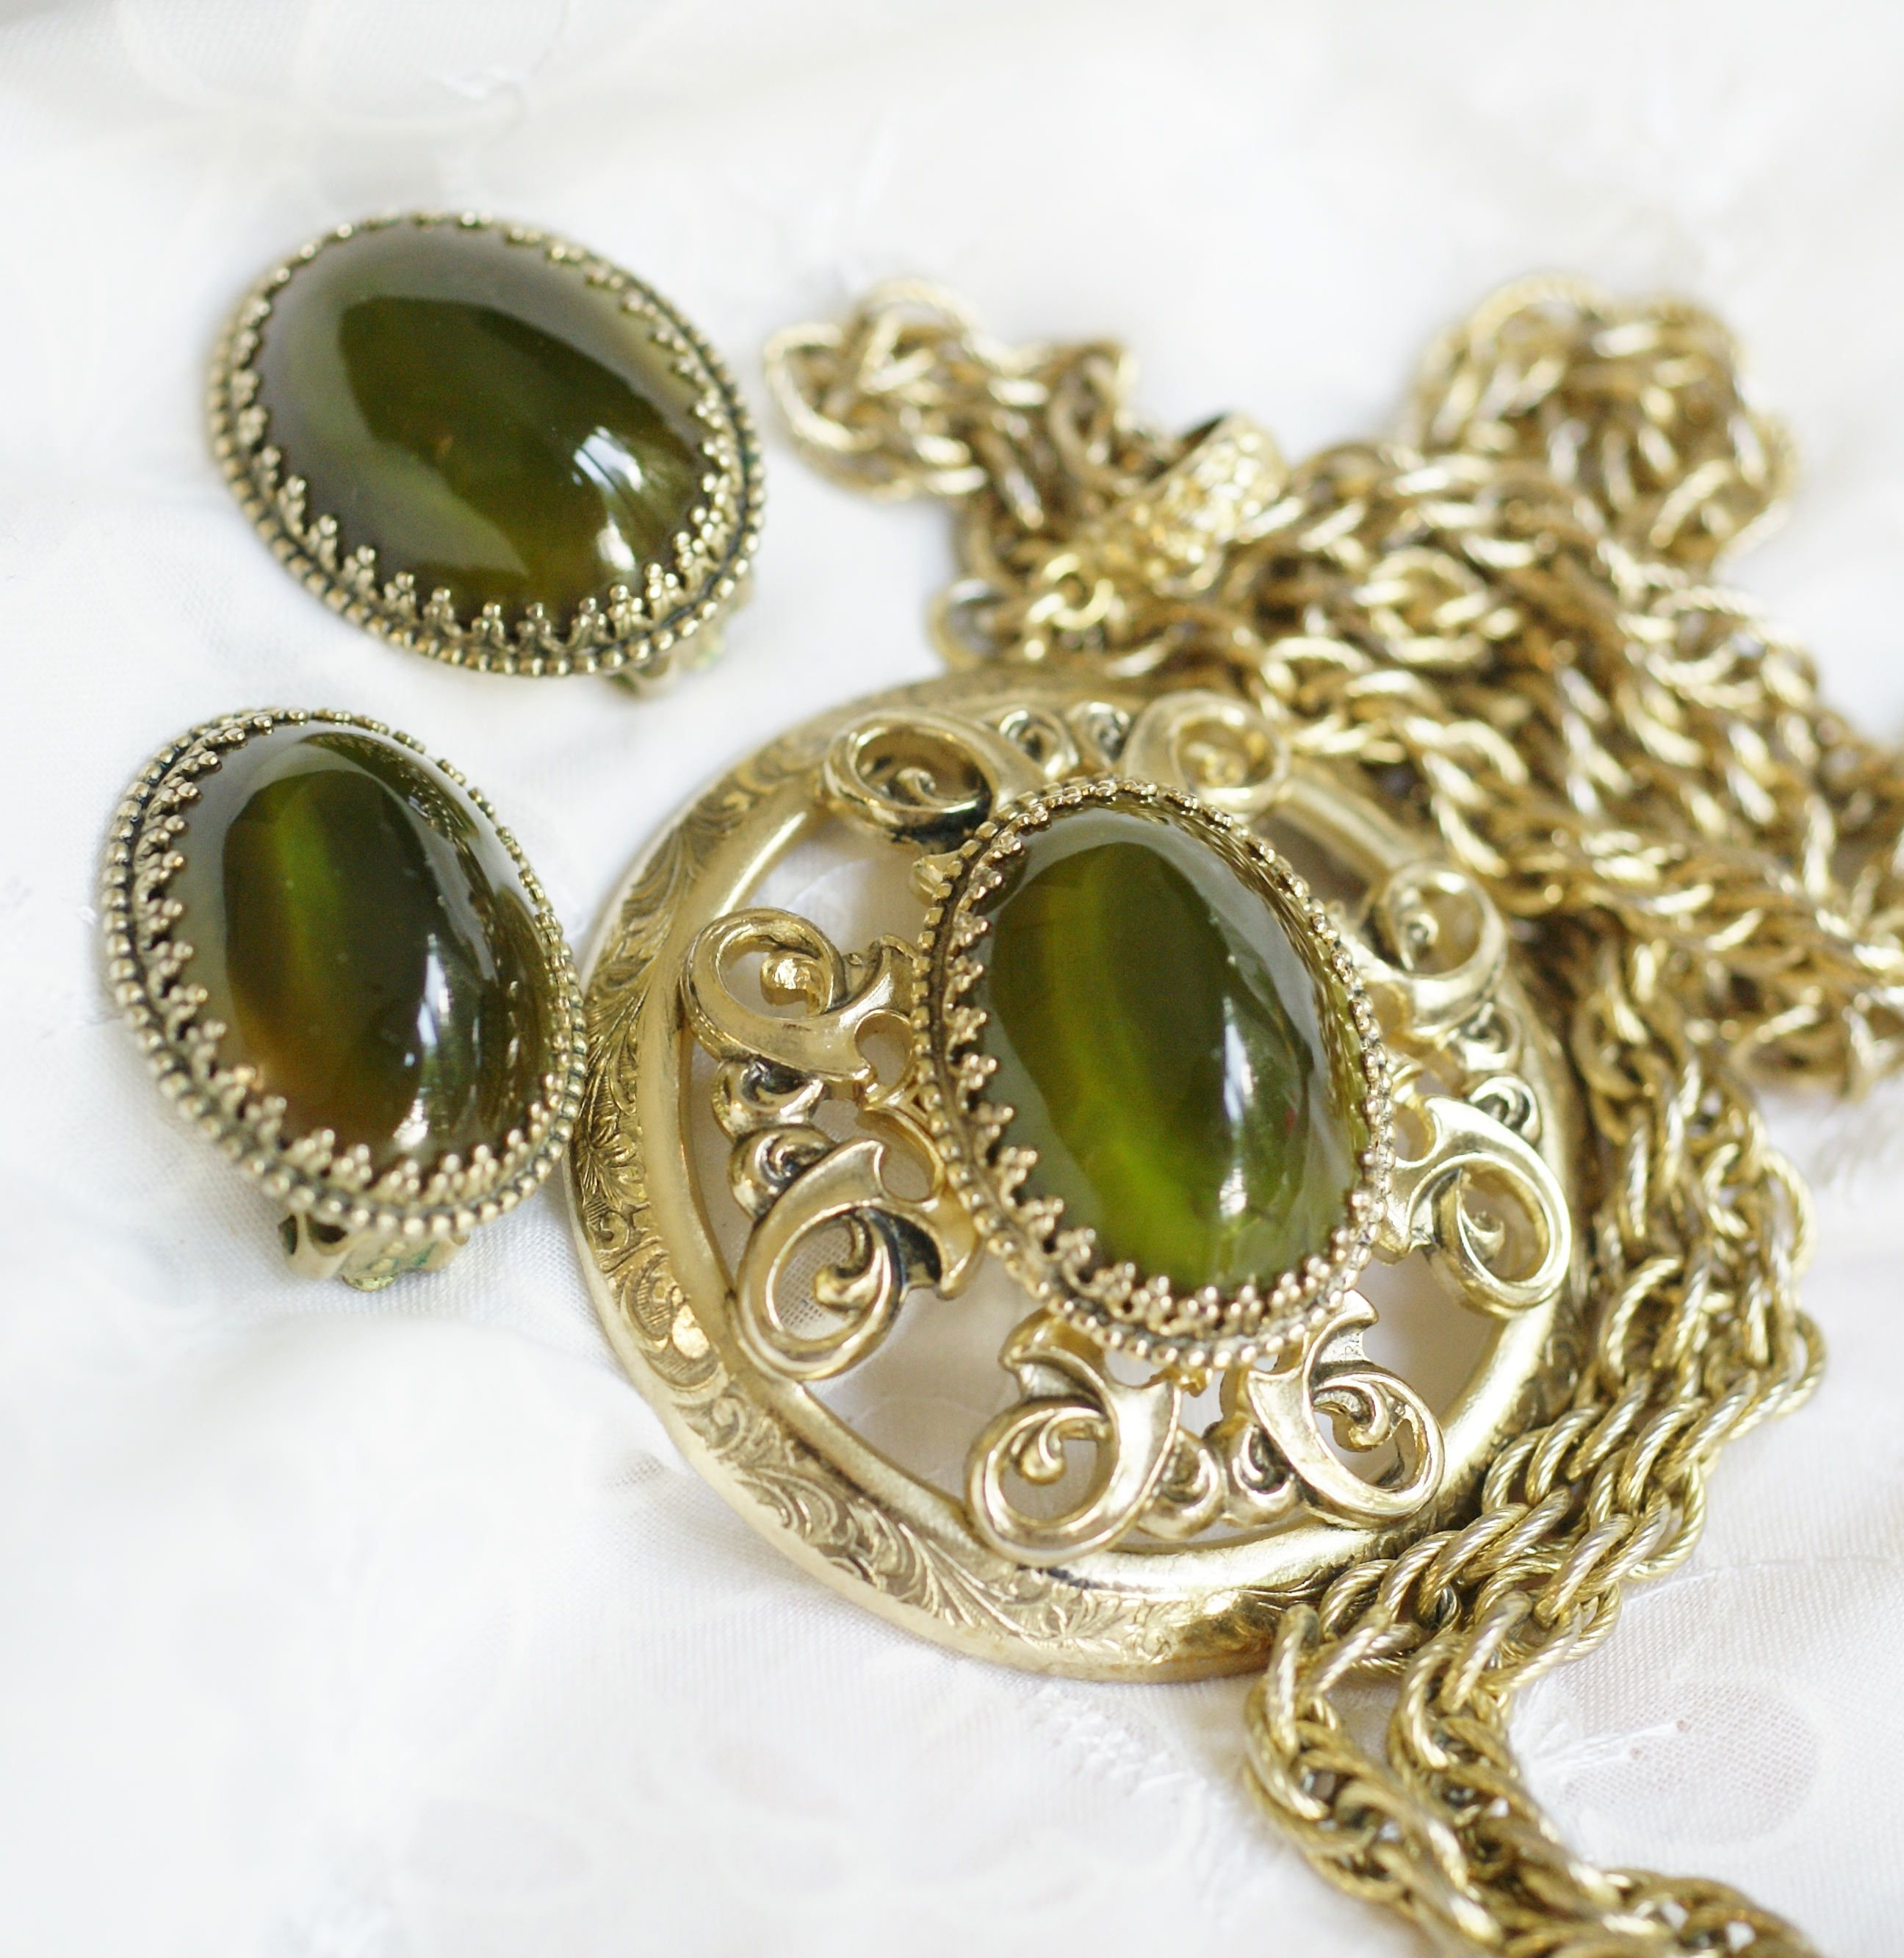 Vintage Whiting Davis Cat Eye Necklace Set Gold Tone And Olive Green Long Pendant